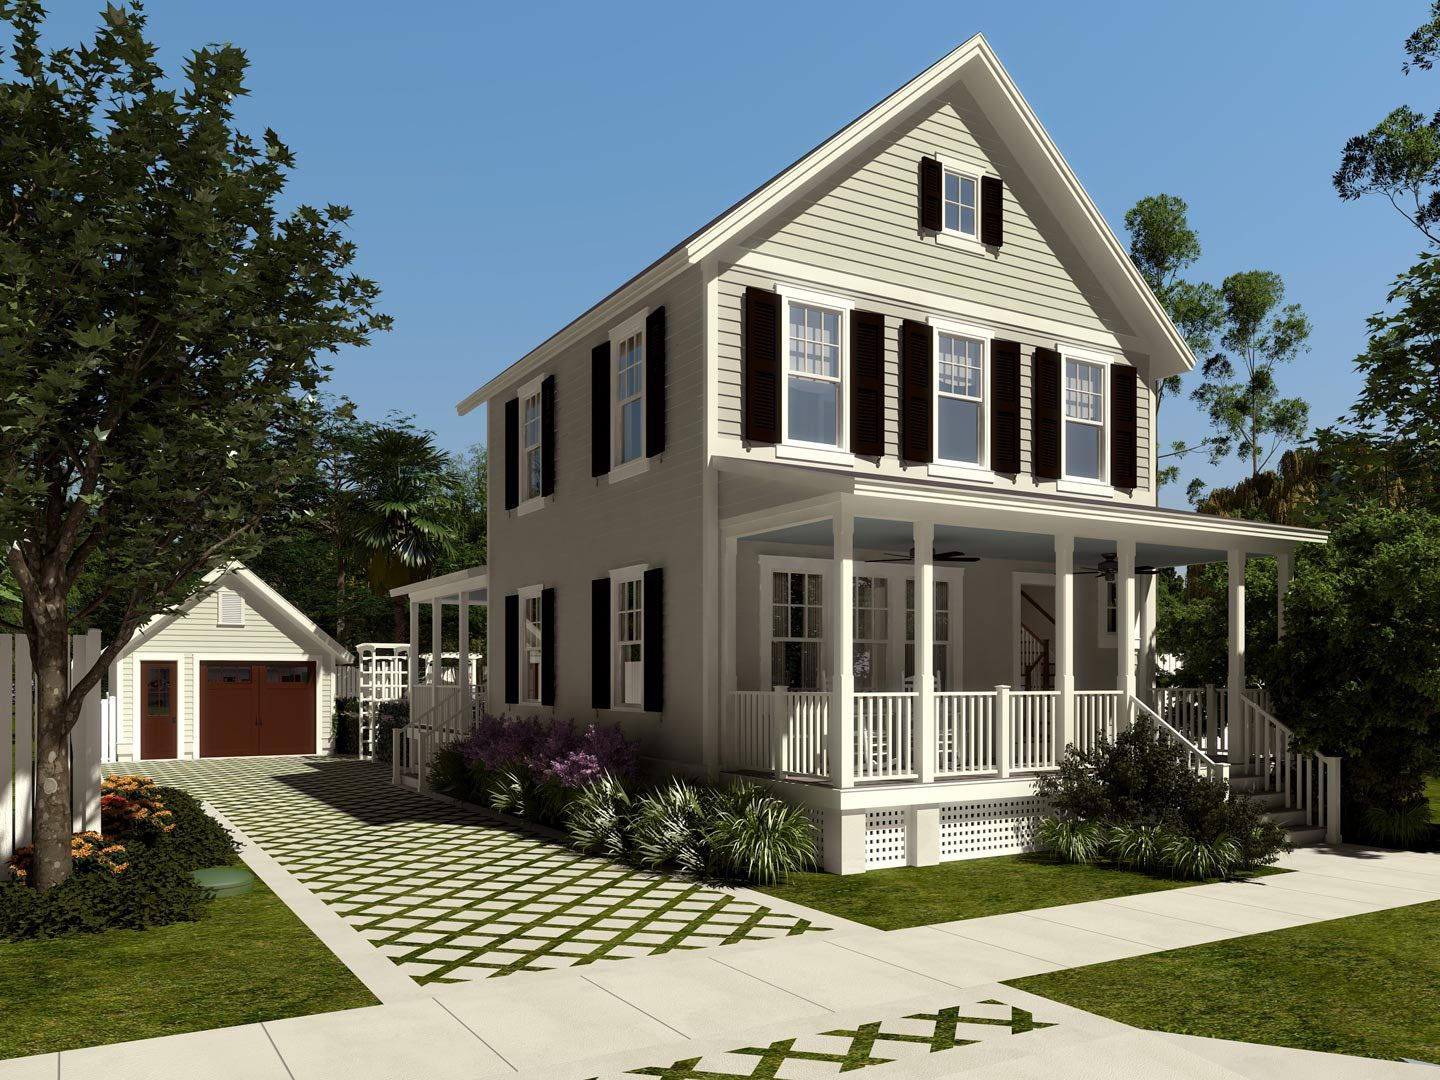 old house designs for new construction - Home Design Construction